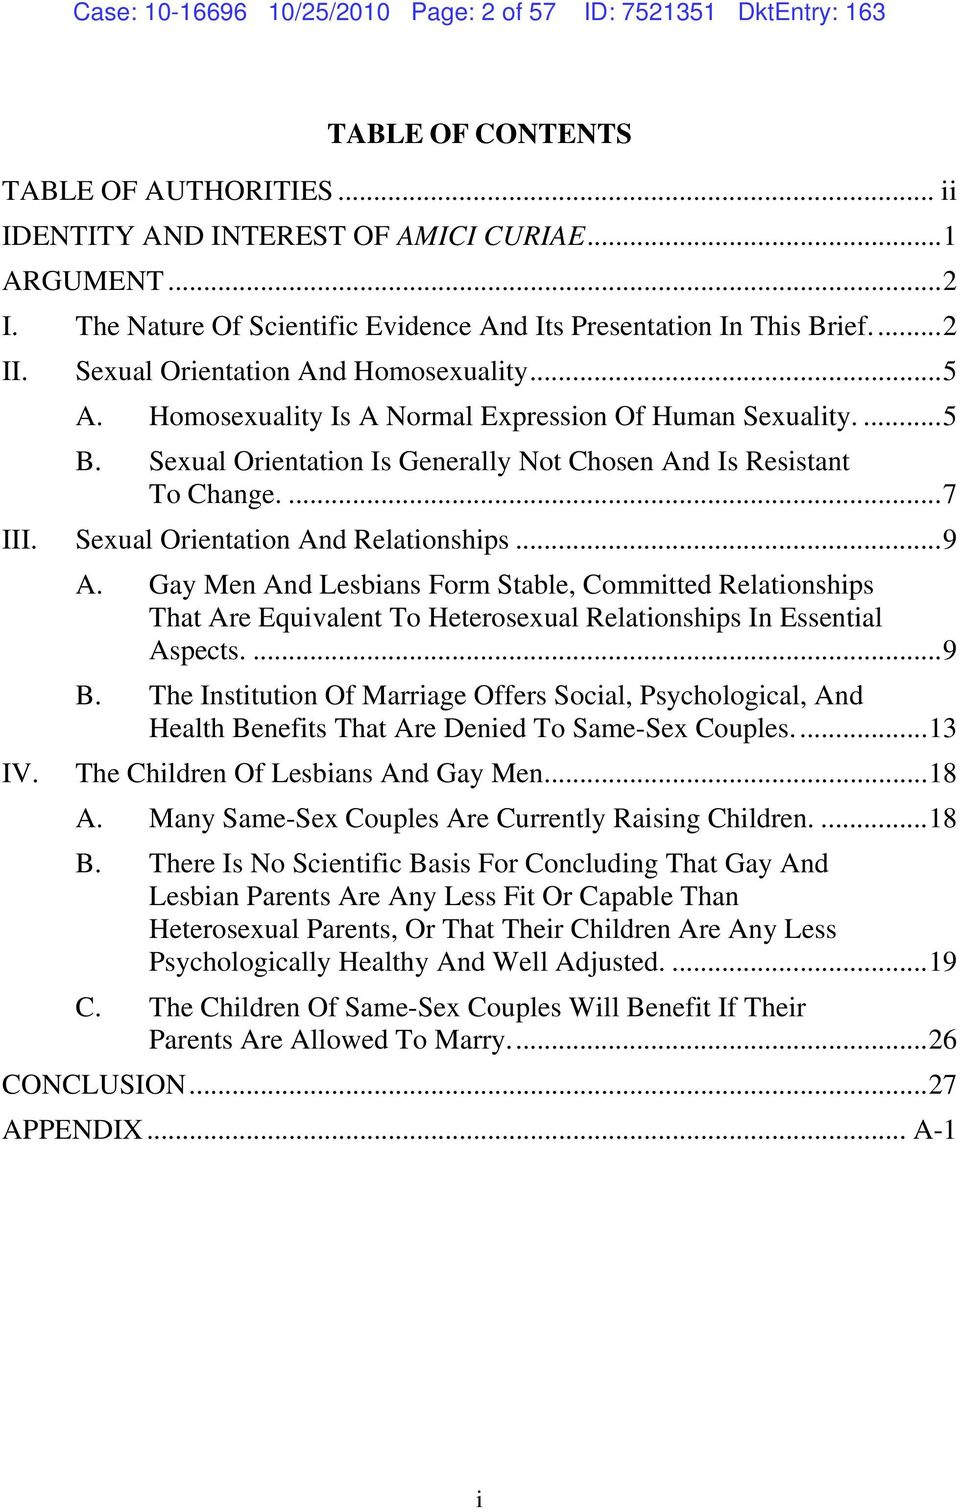 Sexual Orientation Is Generally Not Chosen And Is Resistant To Change....7 III. Sexual Orientation And Relationships...9 A.